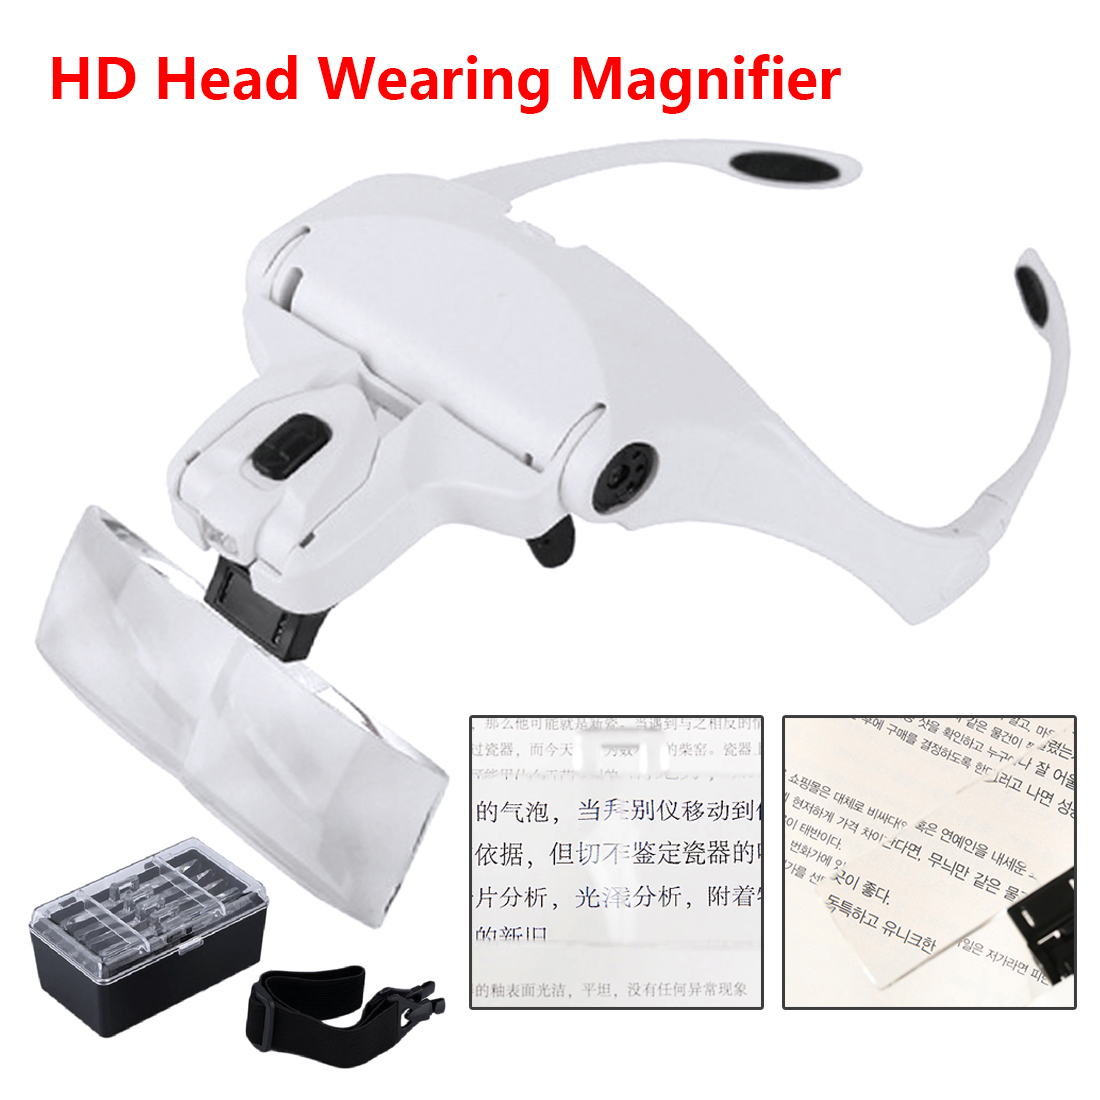 1.0X 1.5X 2.0X 2.5X 3.5X 5 Lens Adjustable Loupe Magnifier With Led Lights Lamp Headband Led Magnifying Glass For Reading